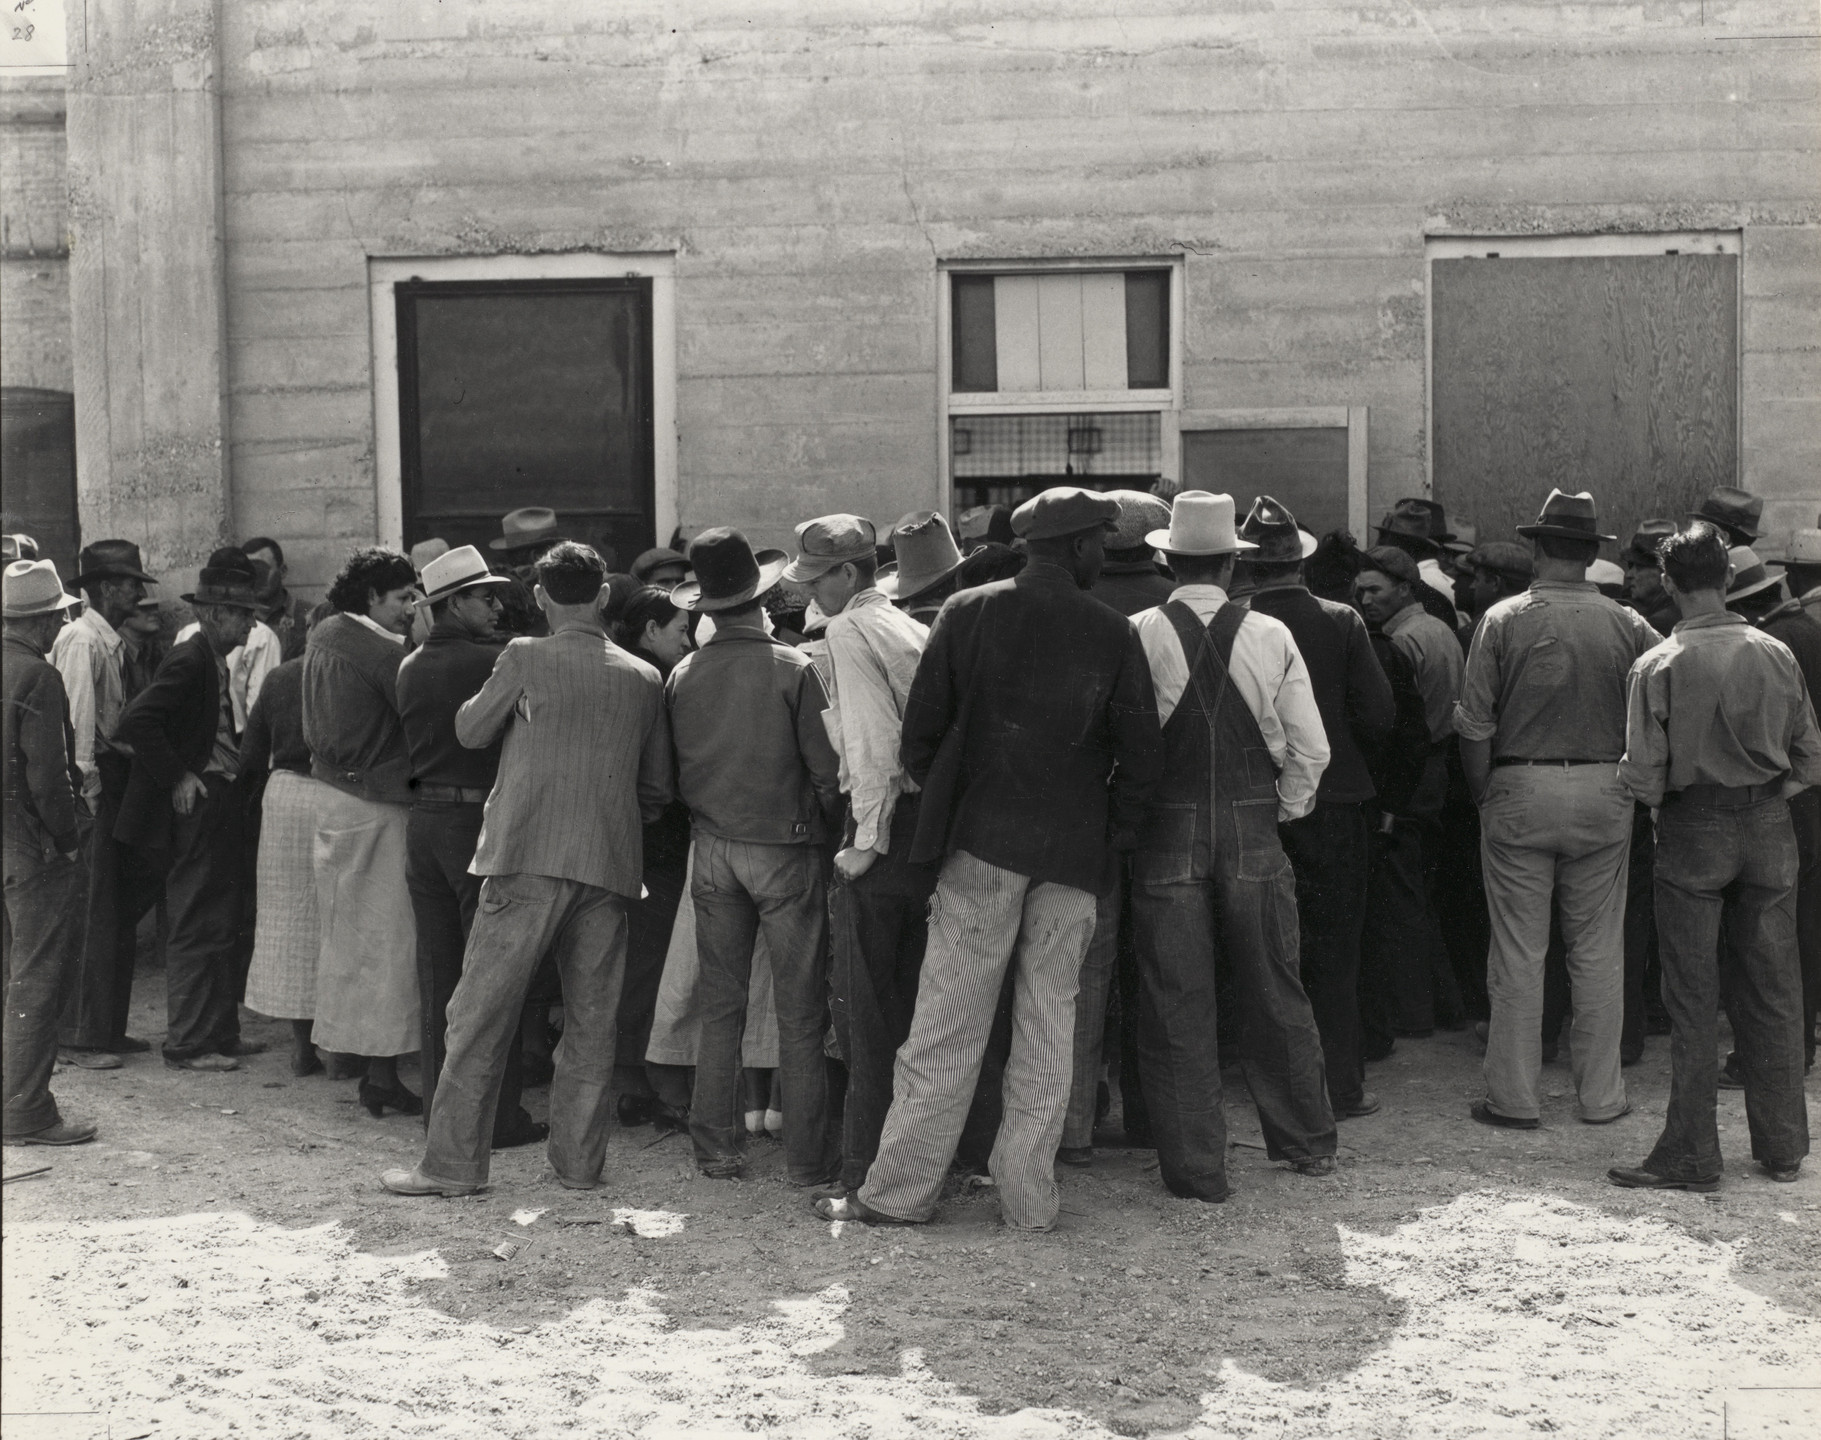 Dorothea Lange. Calipatria, California. February 1937